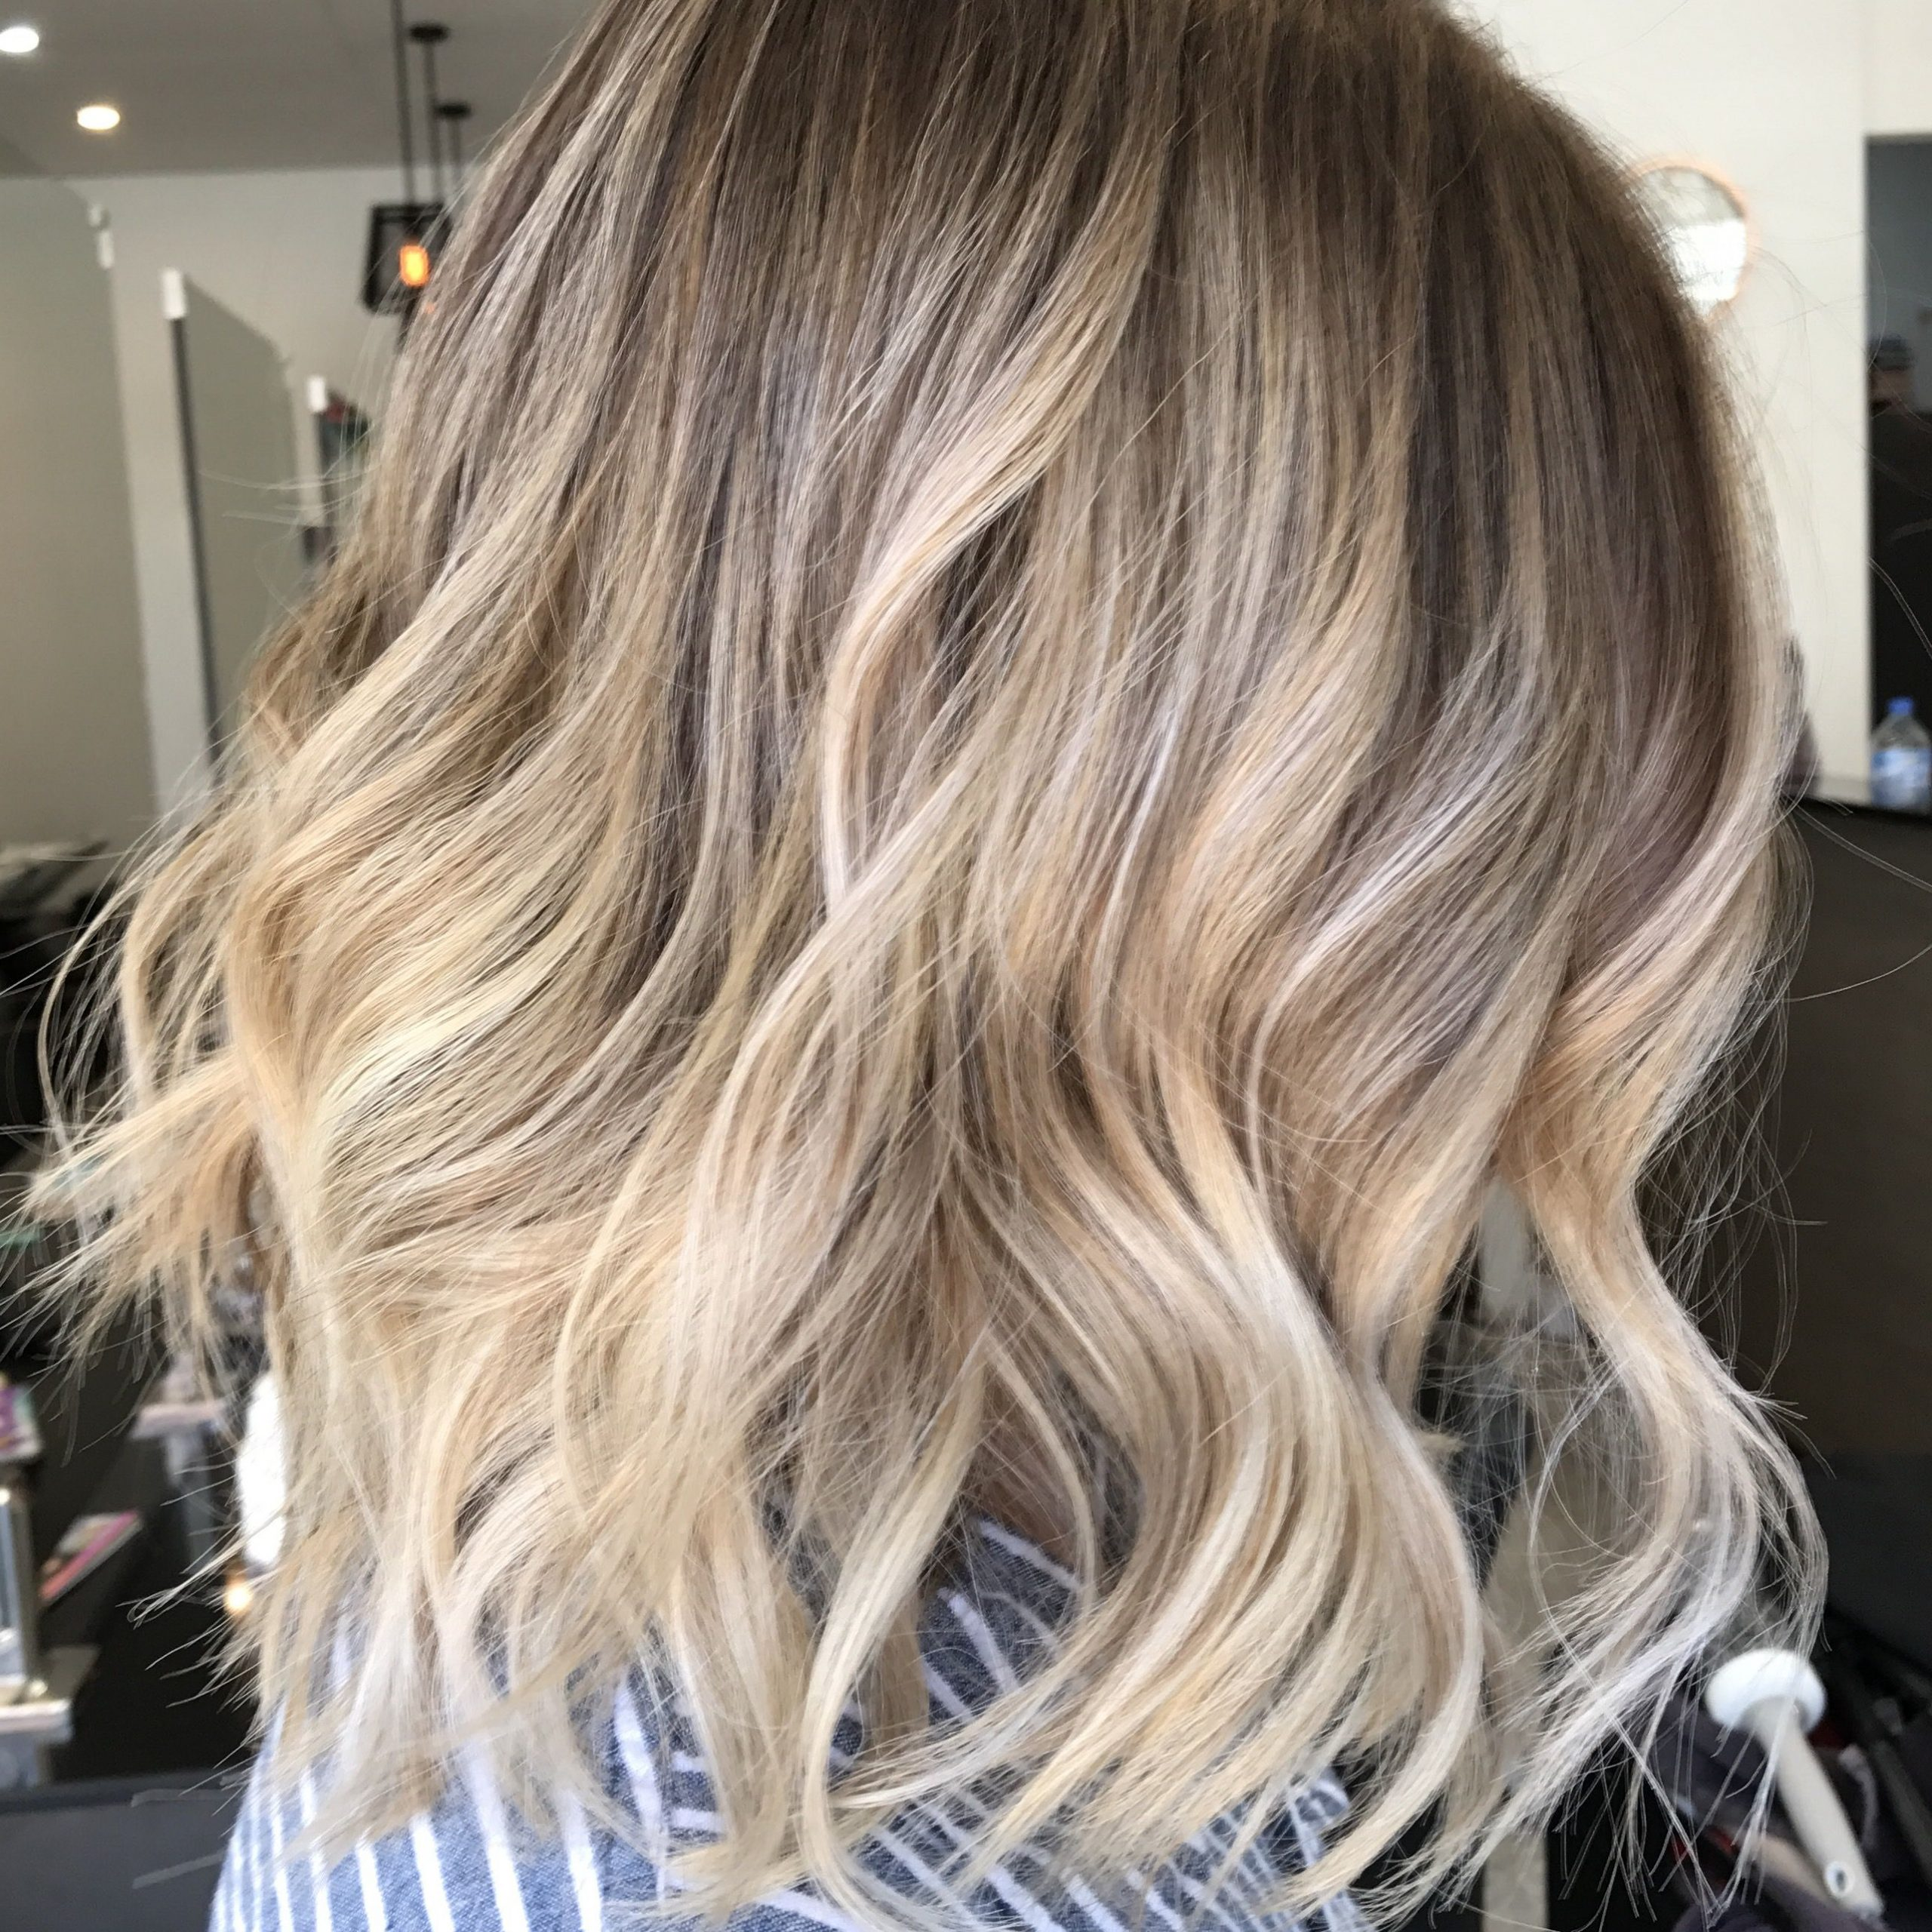 Fashionable Textured Bronde Bob Hairstyles With Silver Balayage Within Lived In Hair Colour Blonde Bronde Brunette Golden Tones (Gallery 6 of 20)